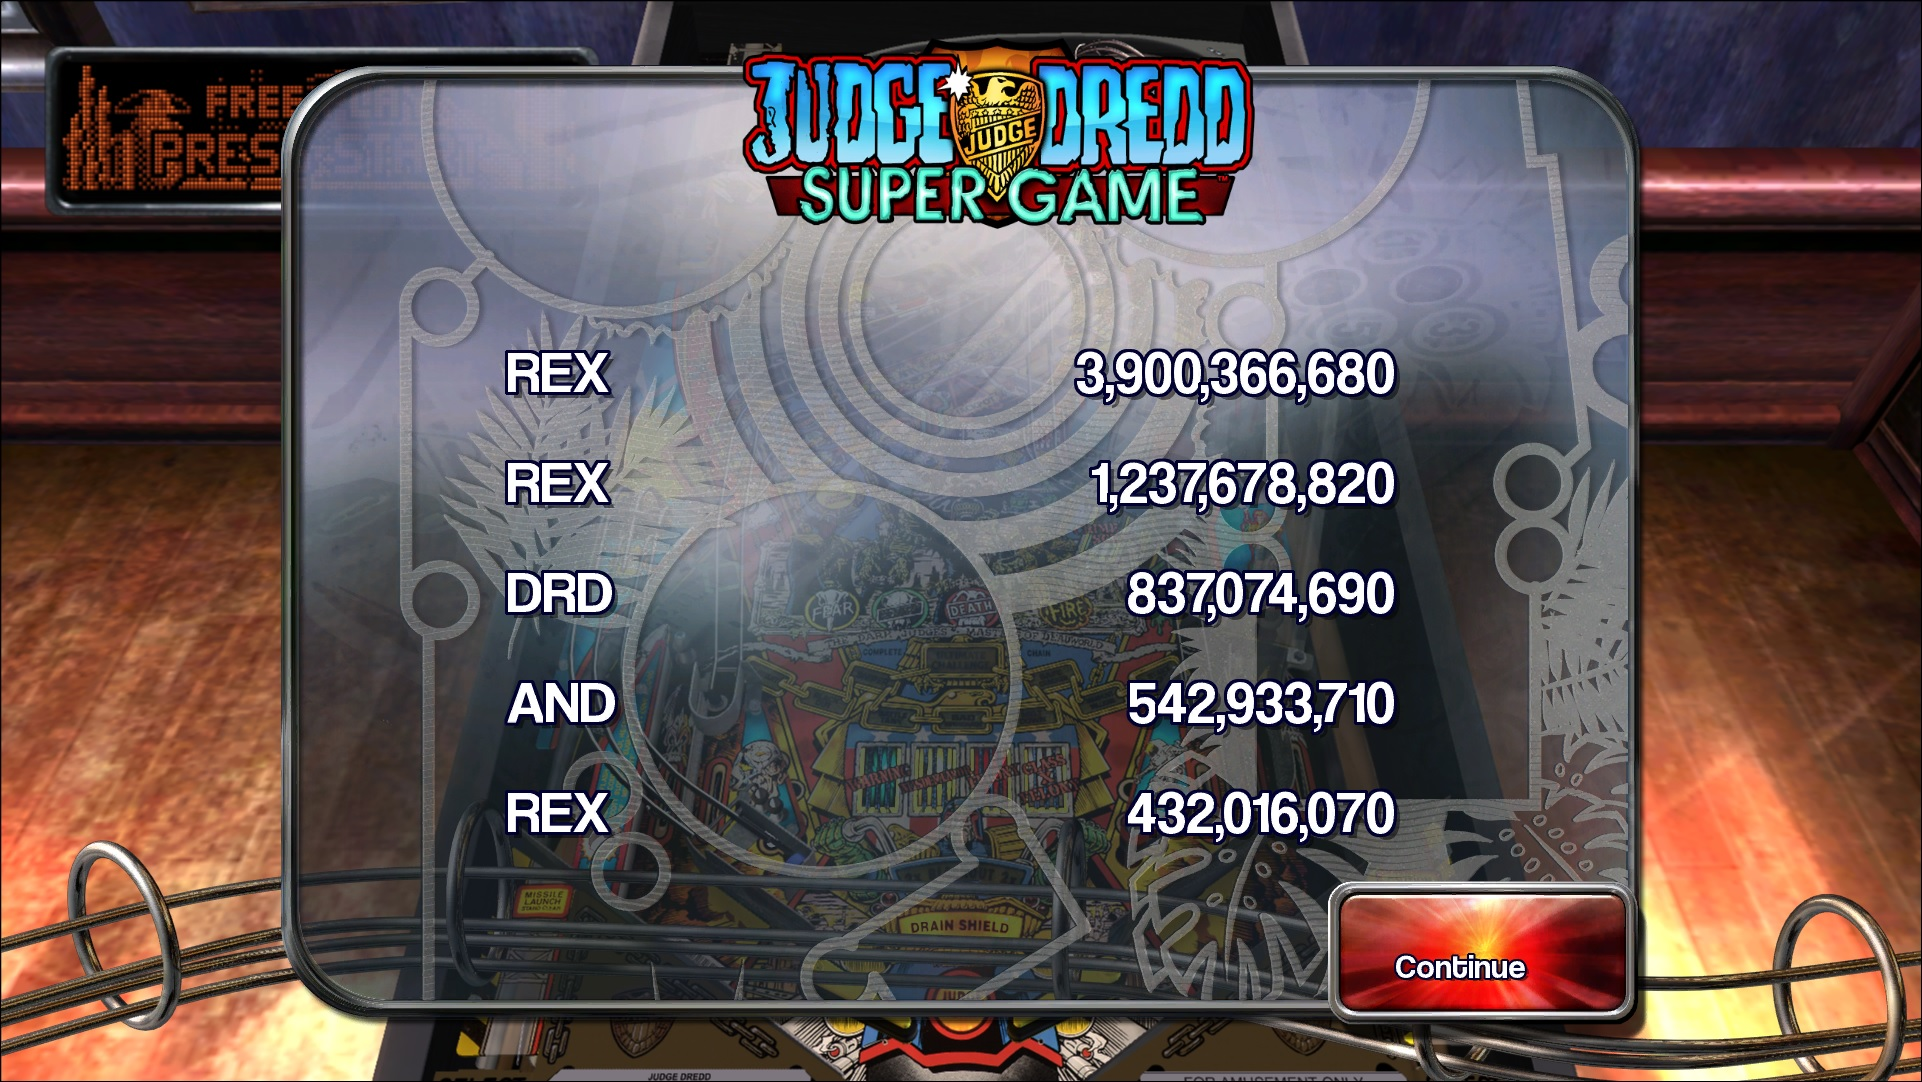 Pinball Arcade: Judge Dredd™ 3,900,366,680 points